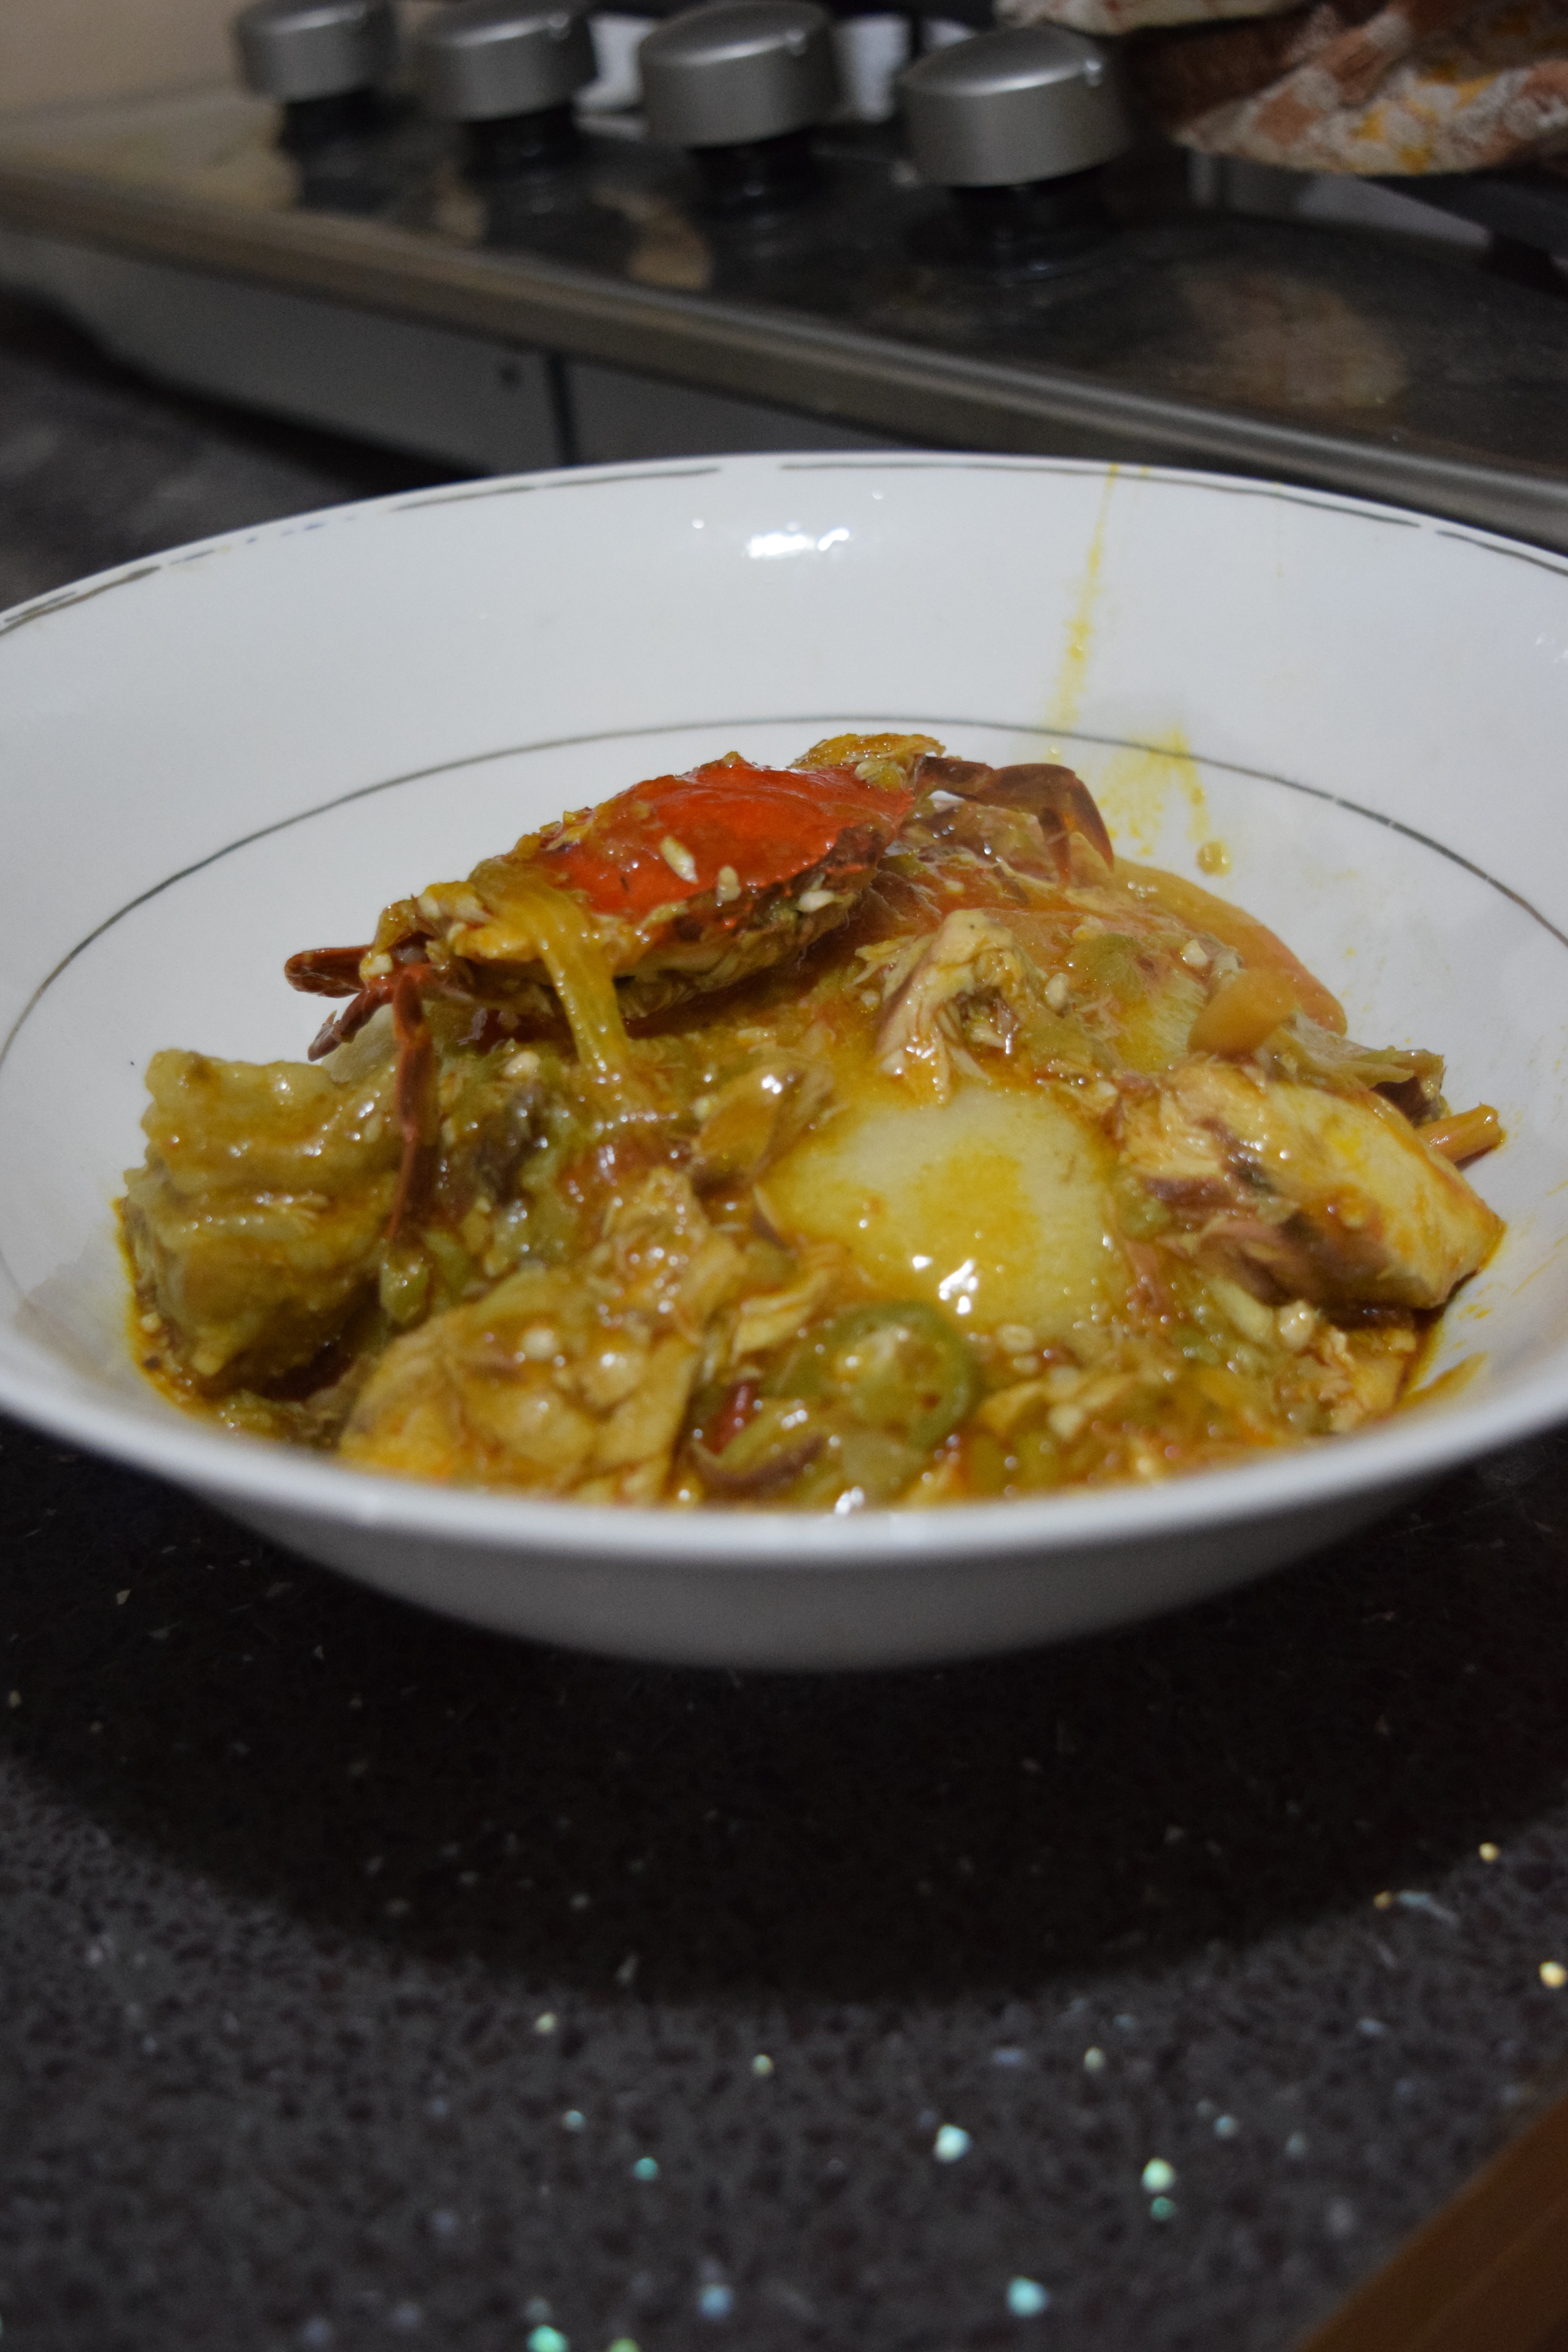 The finished product: banku and okro soup.